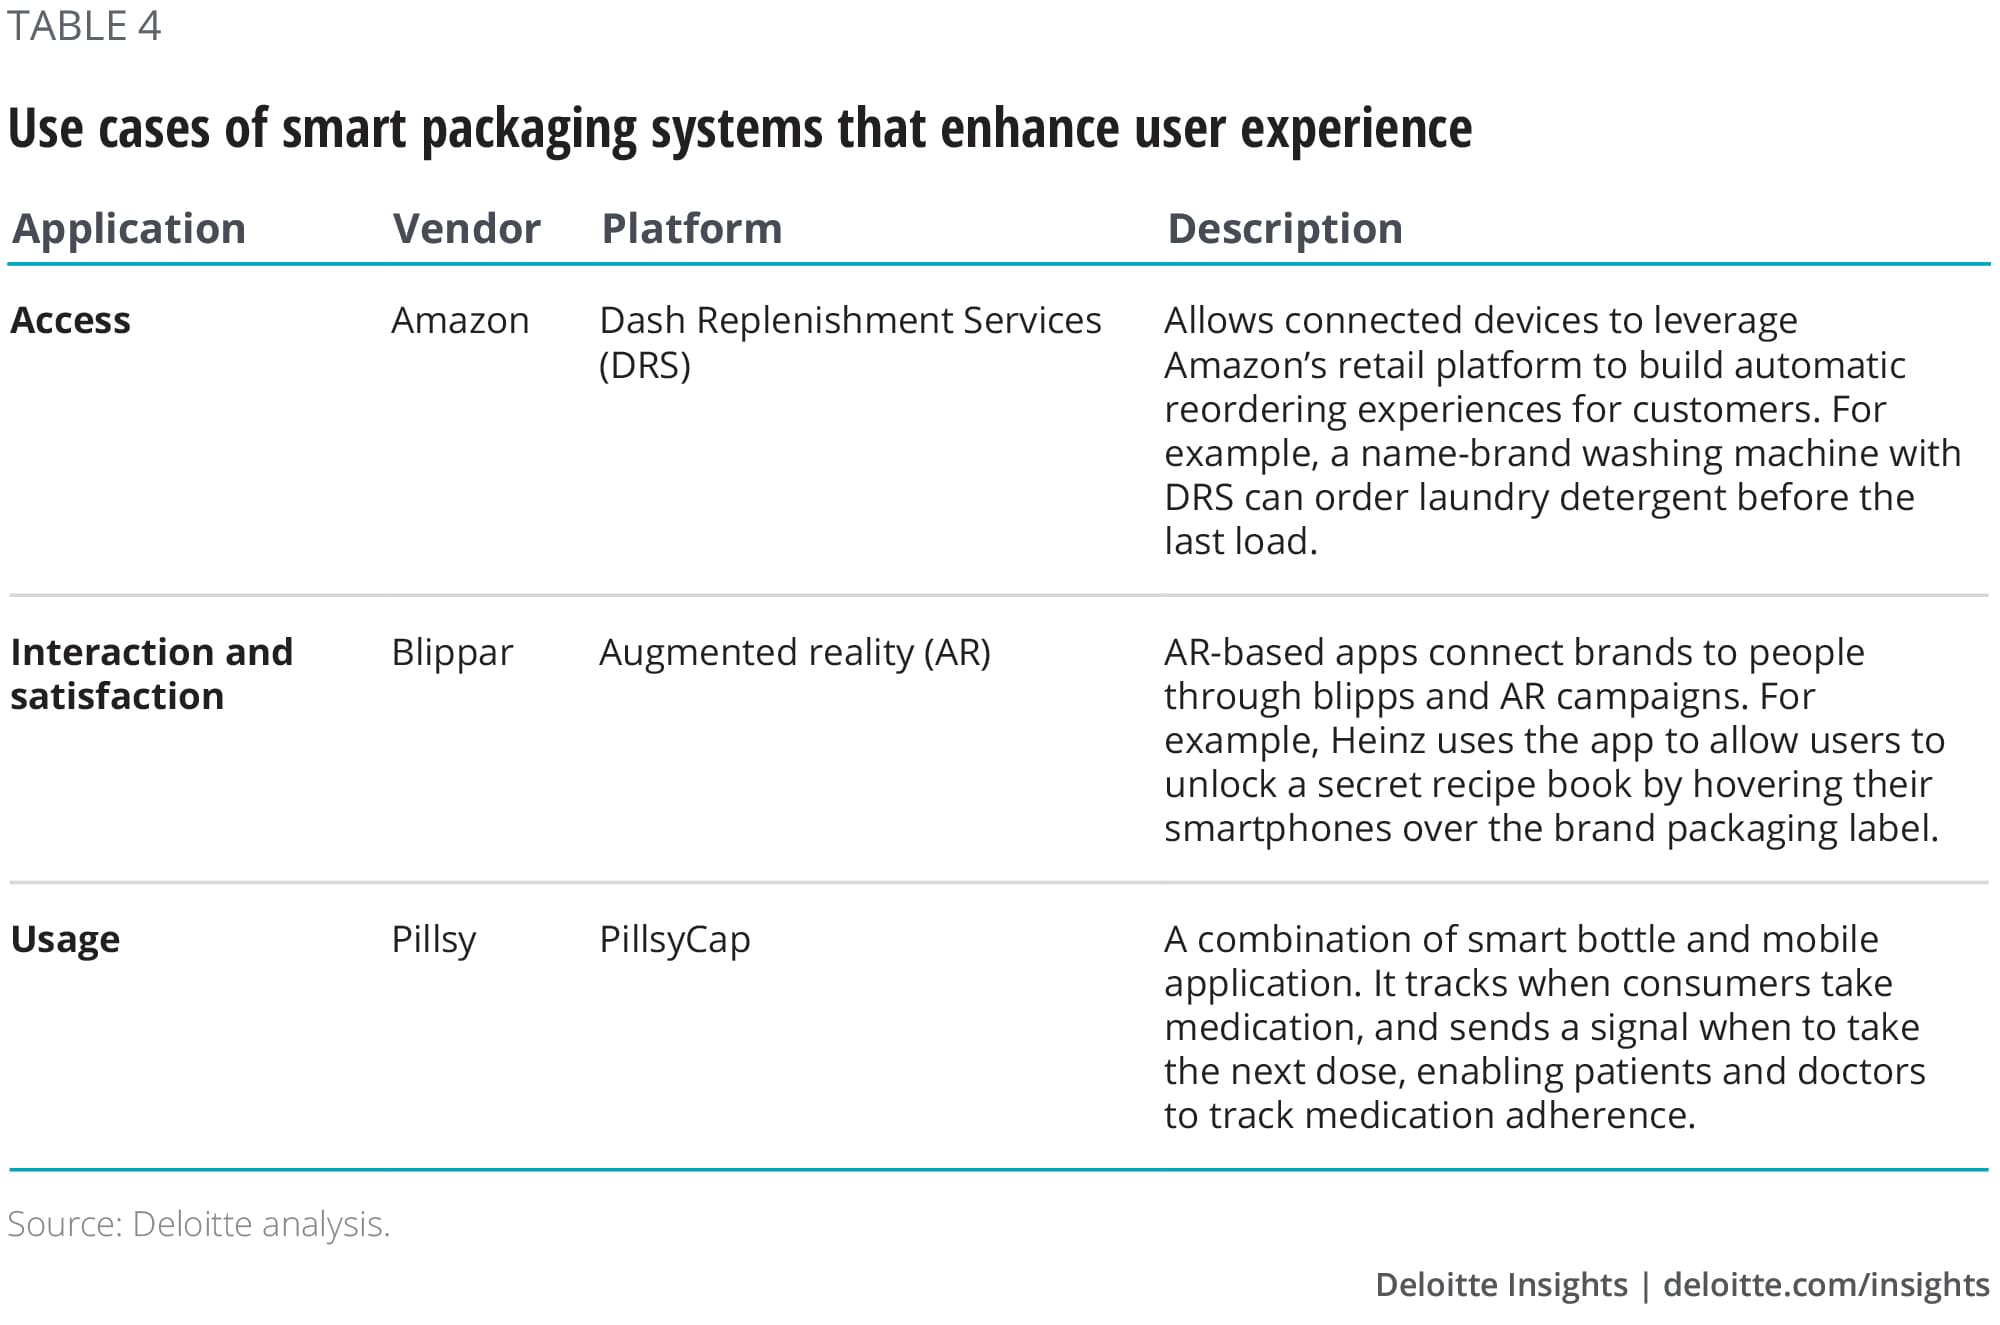 Use cases of smart packaging systems that enhance user experience